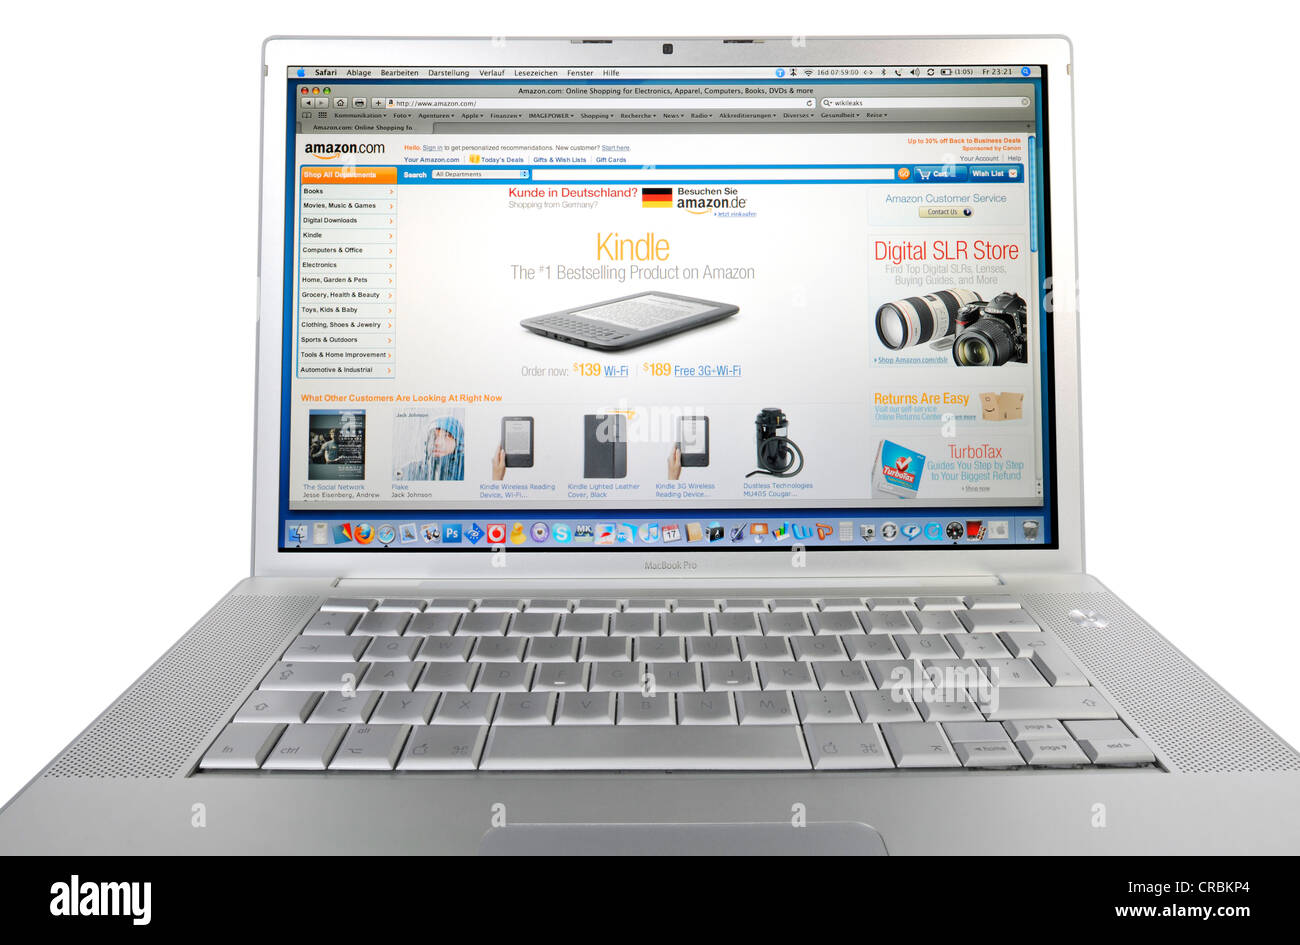 Amazon.com, online shopping, displayed on an Apple MacBook Pro - Stock Image